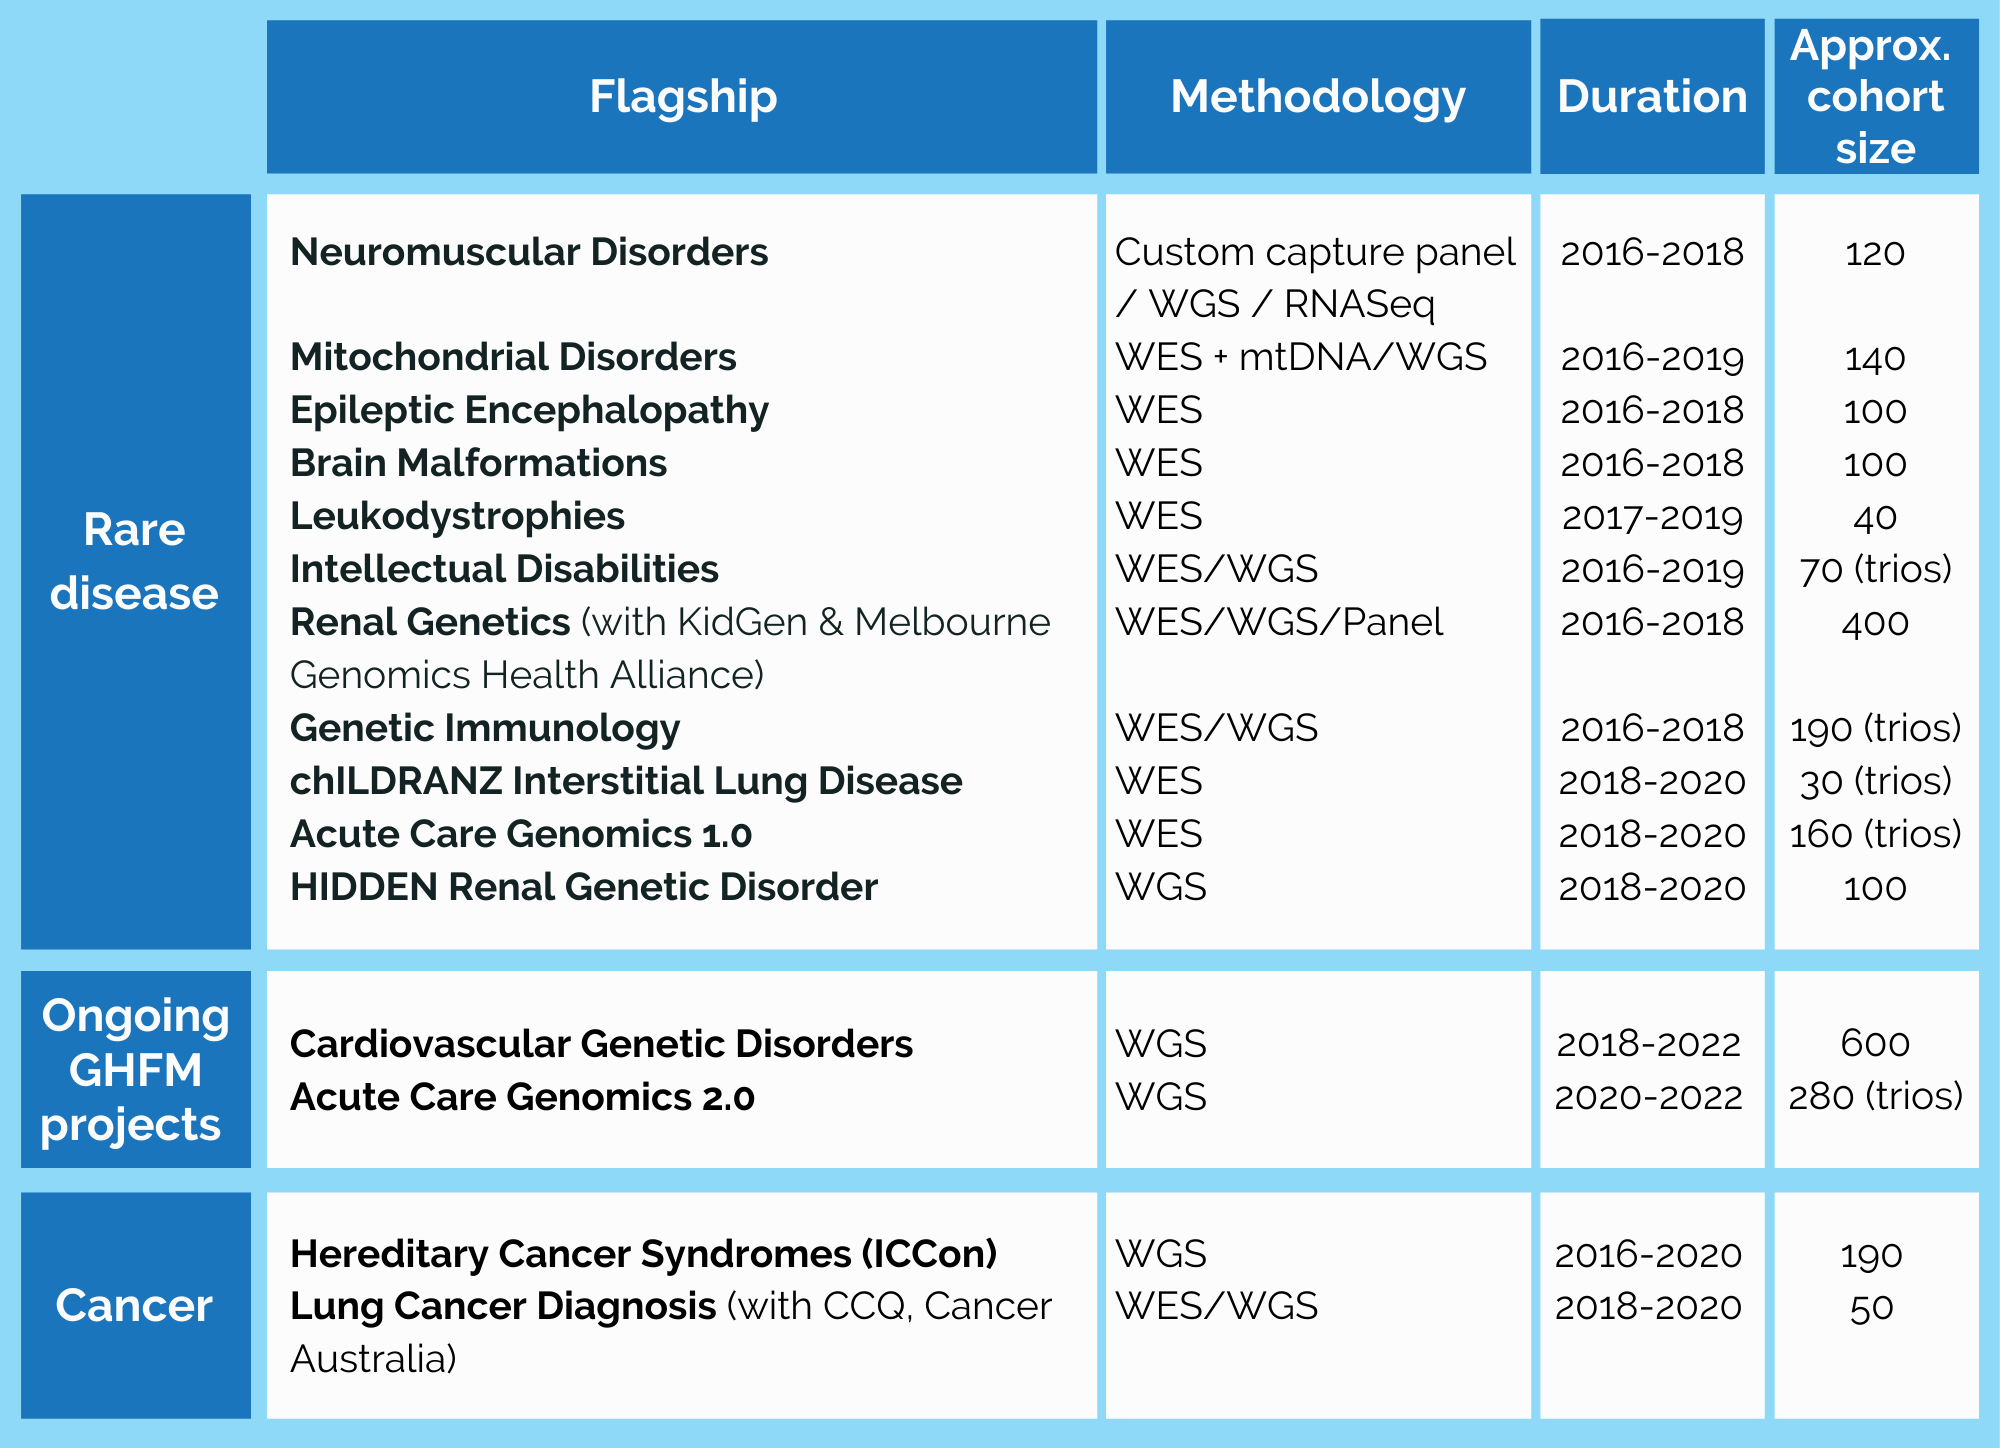 Table of flagship datasets